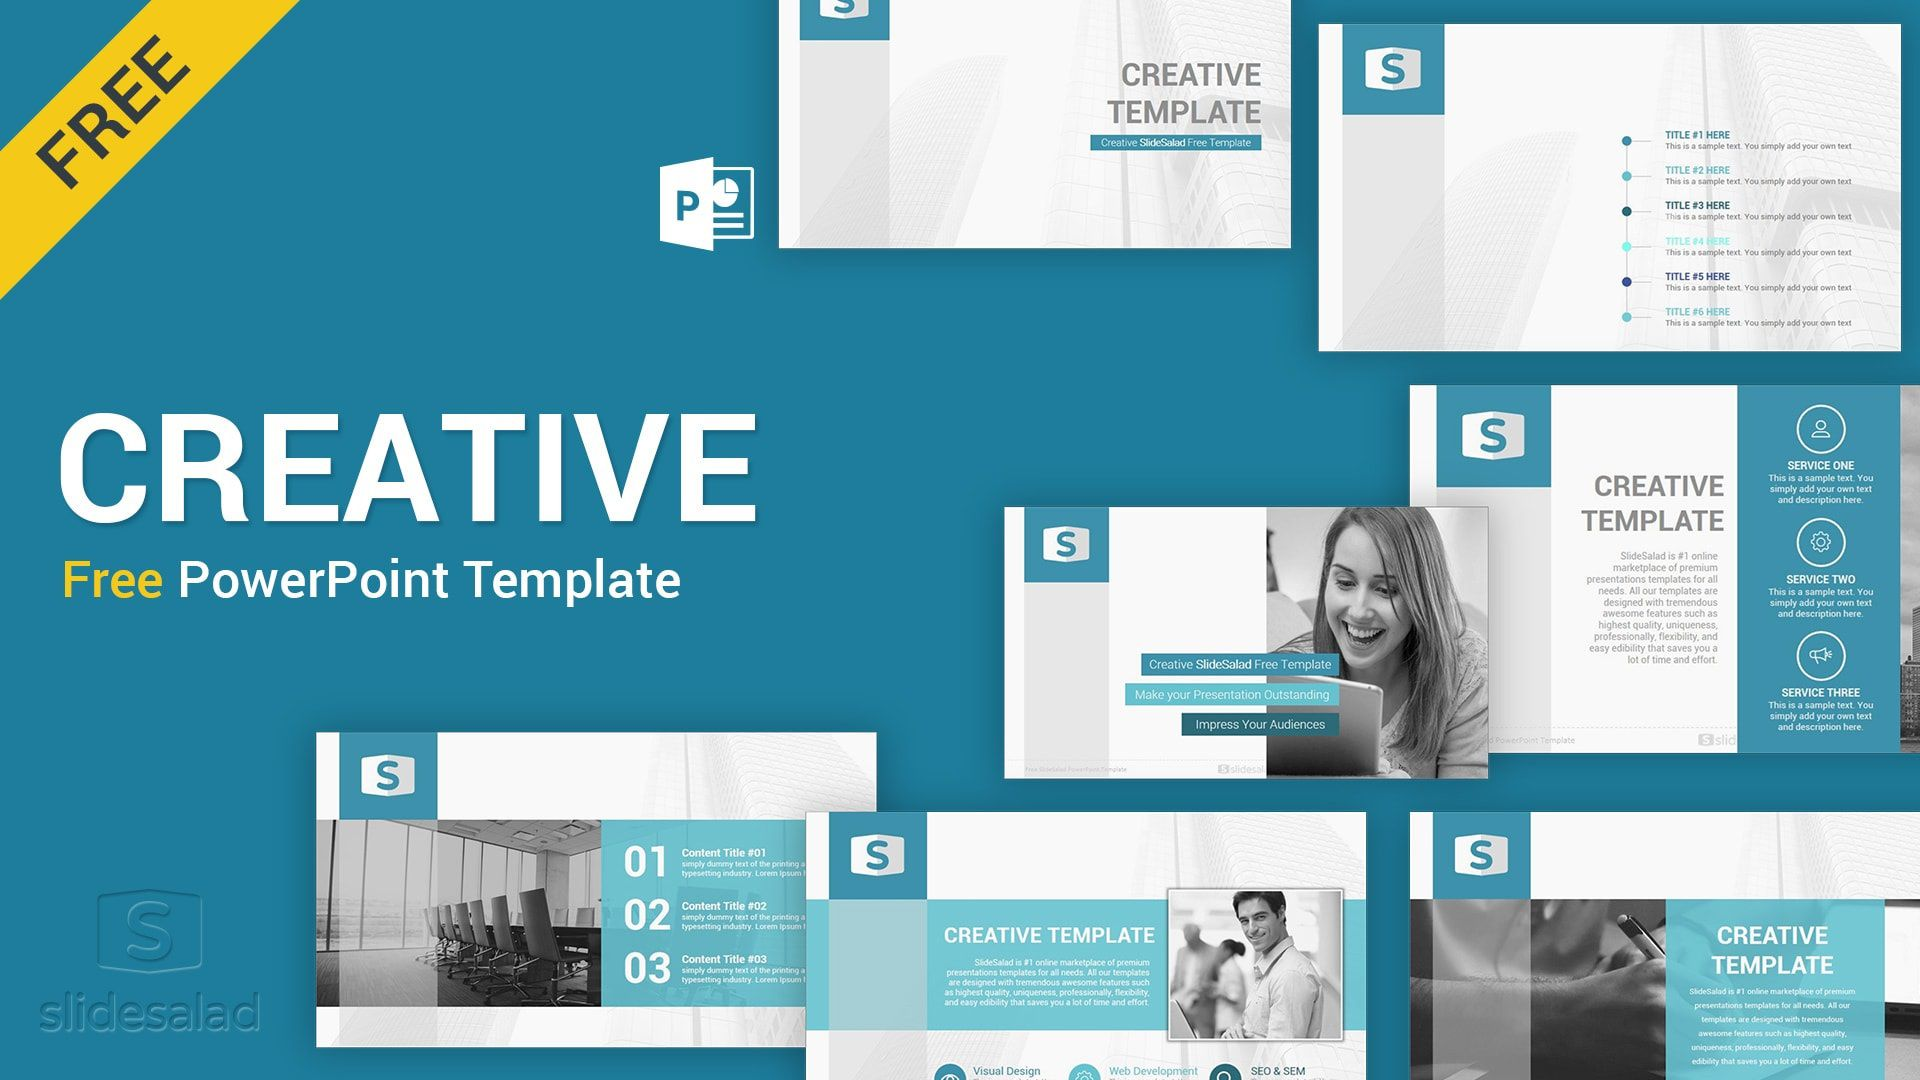 005 Simple Free Download Powerpoint Template High Definition  Templates Medical Theme Presentation 2018Full